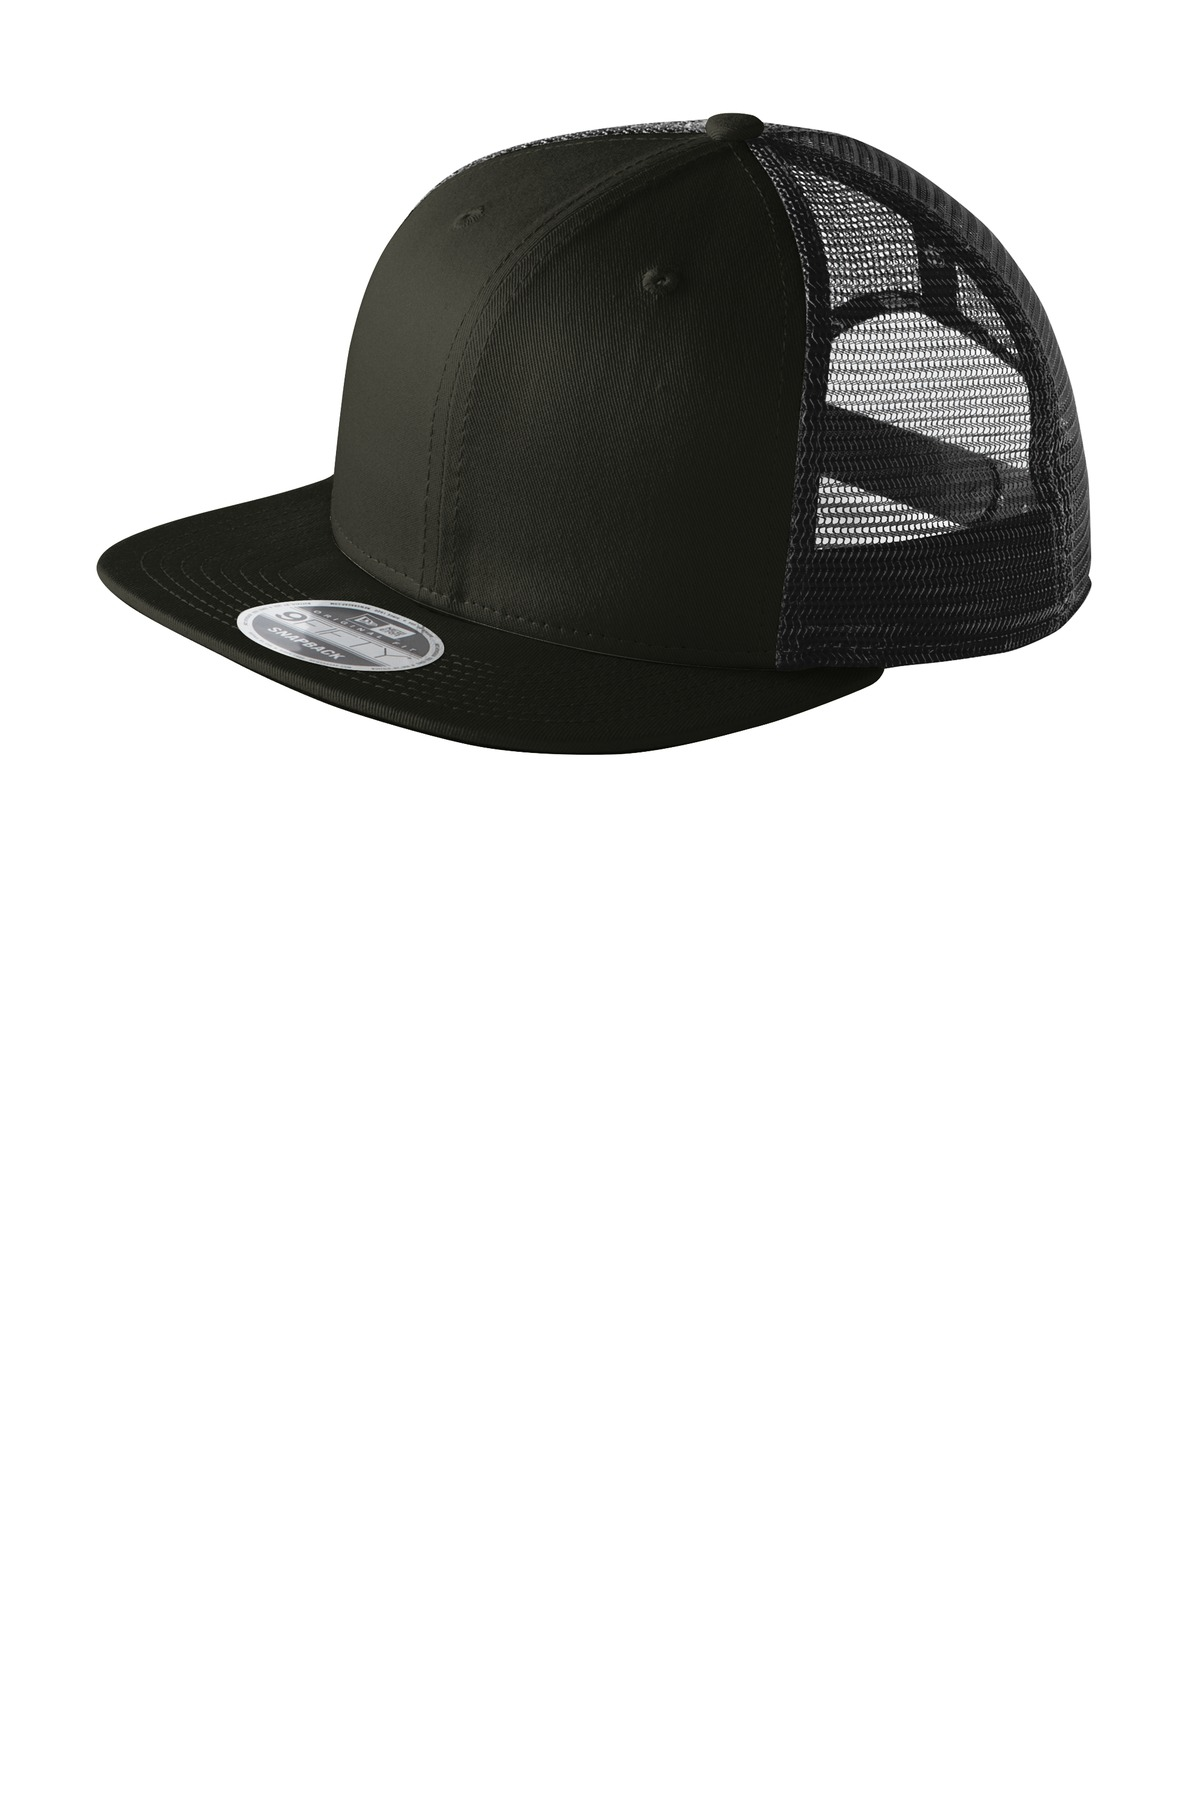 New Era ®  Original Fit Snapback Trucker Cap. NE403 - Black/ Black